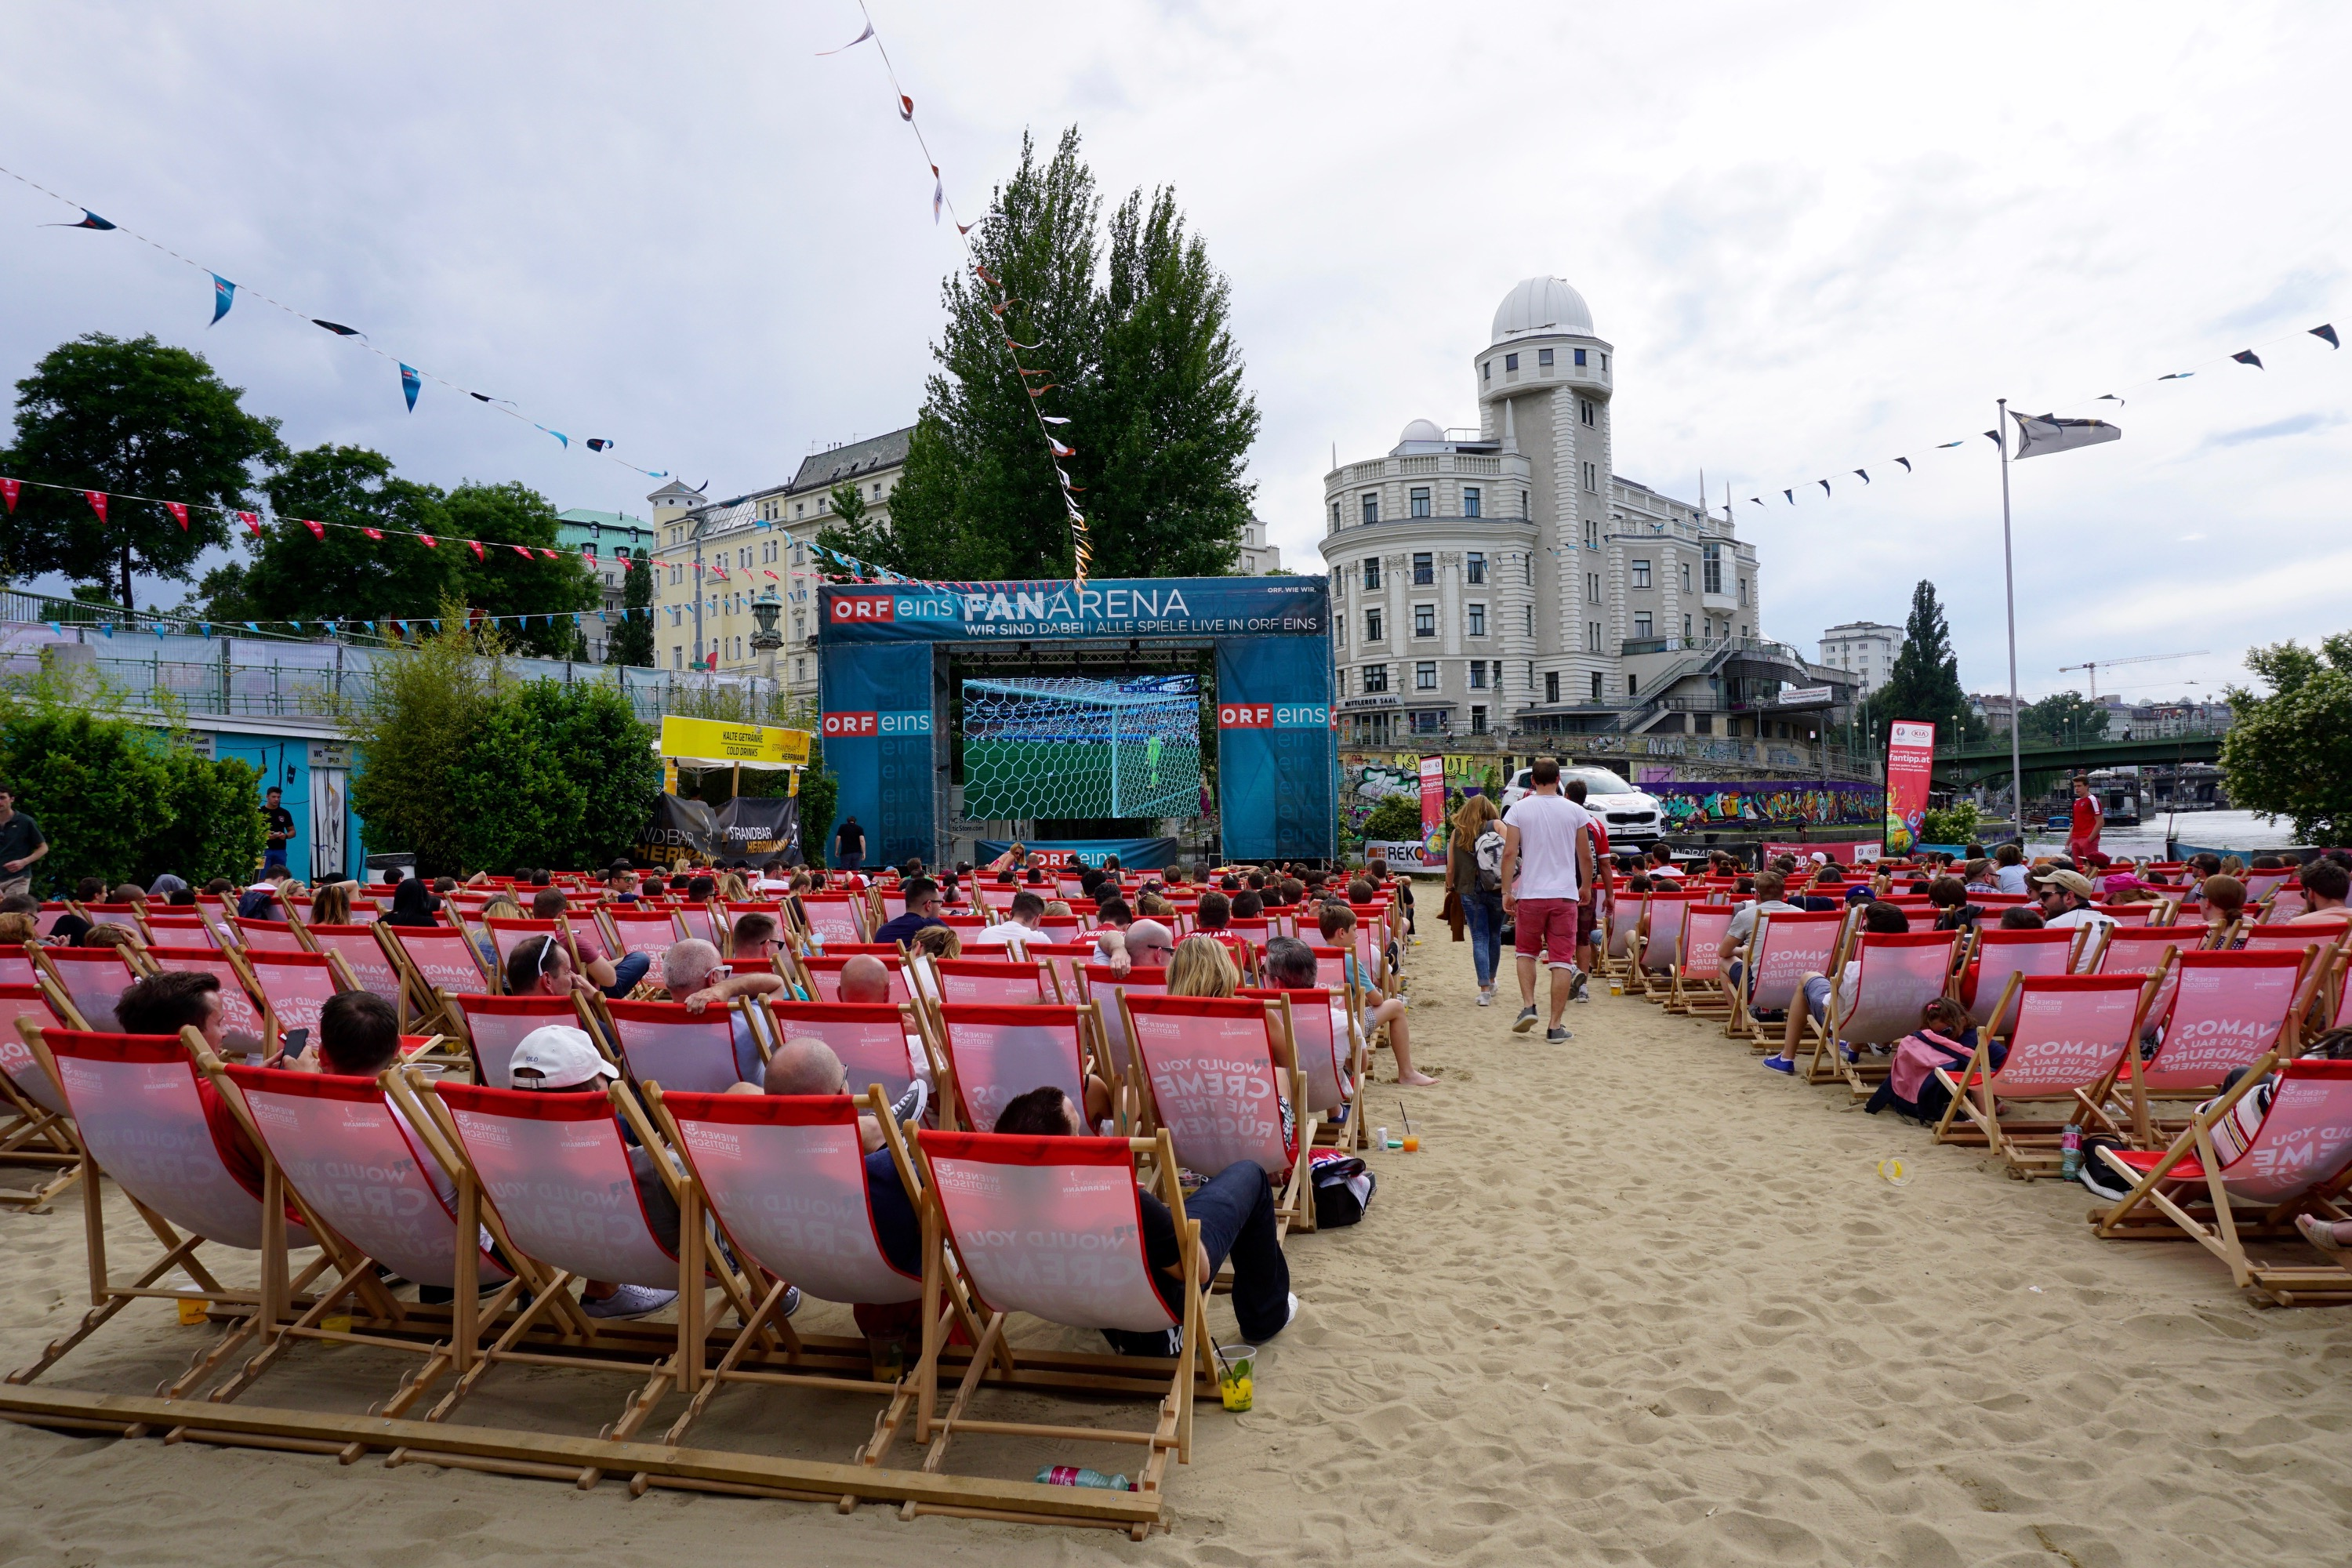 Euro Cup 2016 beach party on the river